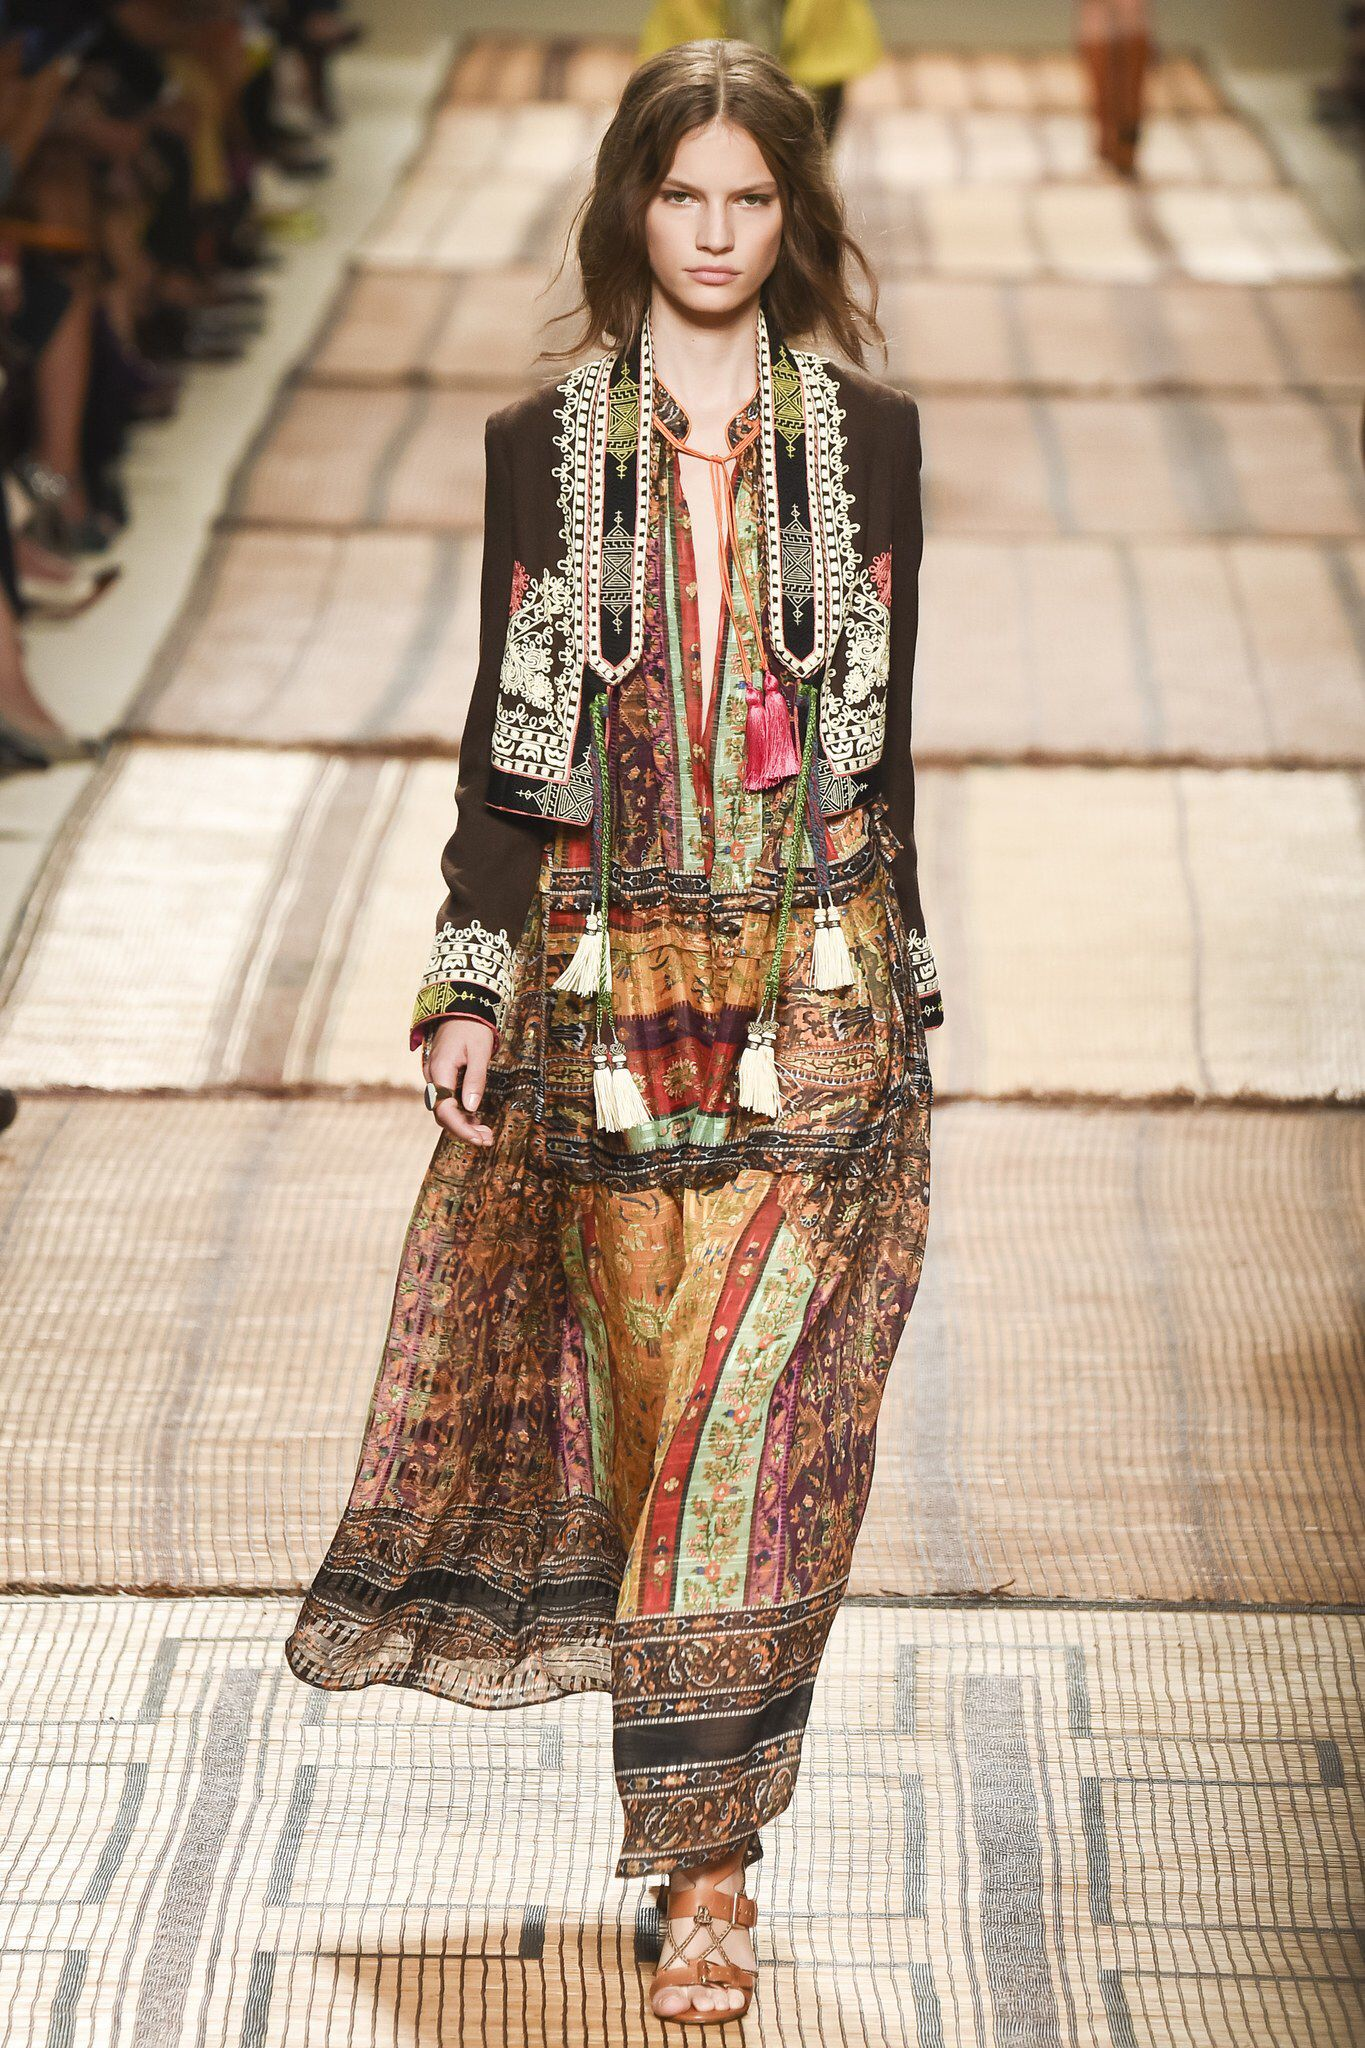 f8b4cabc537 Etro - Spring 2017 Ready-to-Wear Bohemian chic